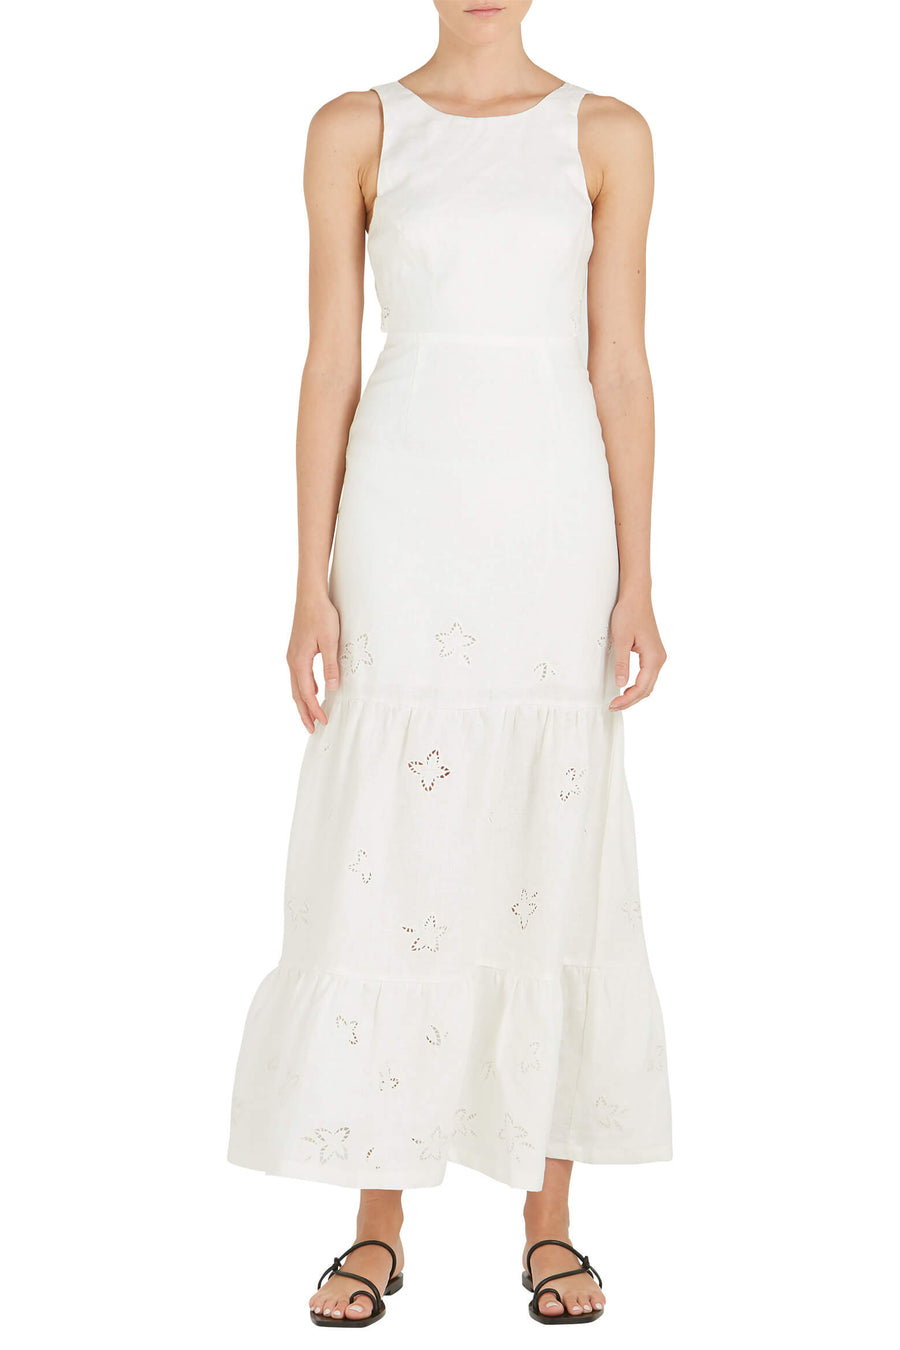 Sir The Label Alena Tiered Maxi Dress from The New Trend